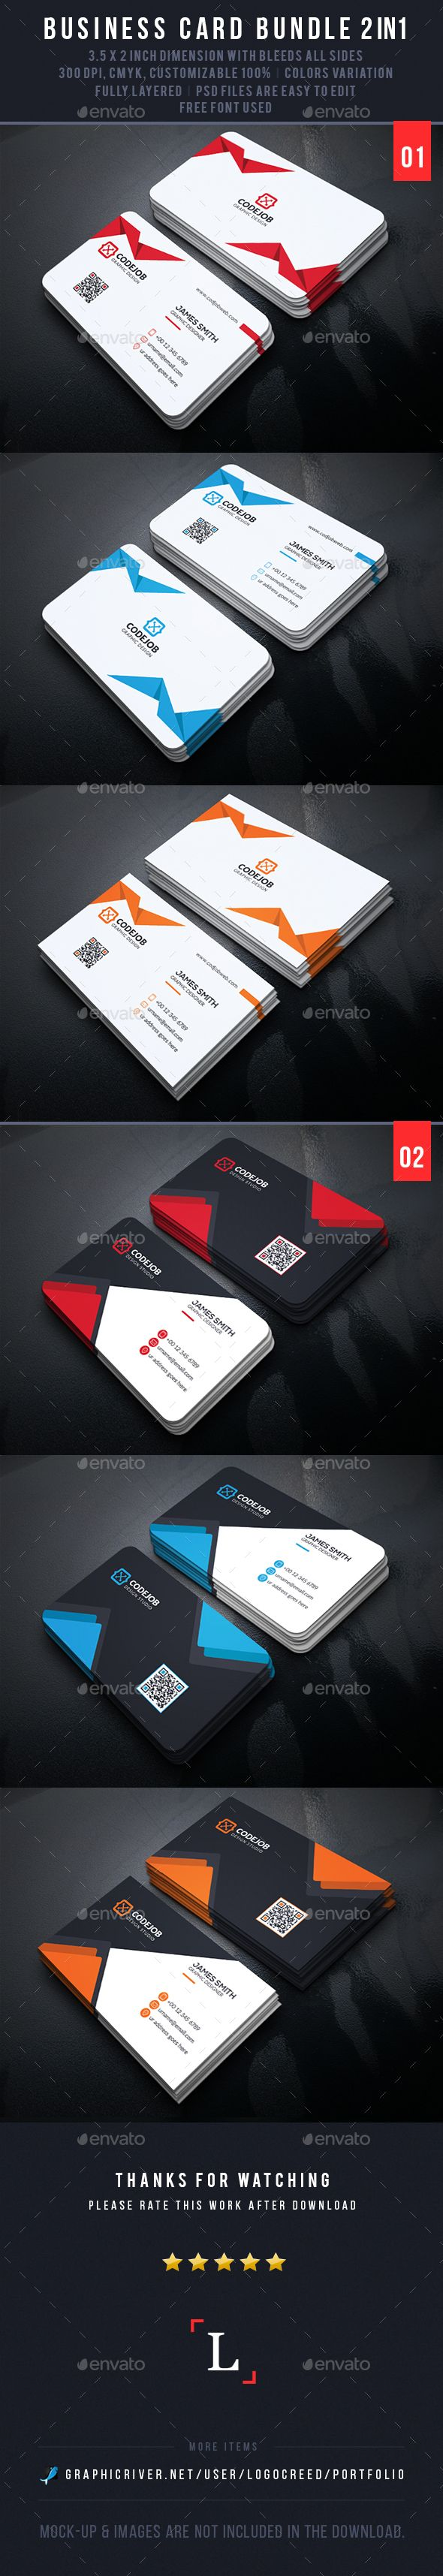 229 best Business Card images on Pinterest